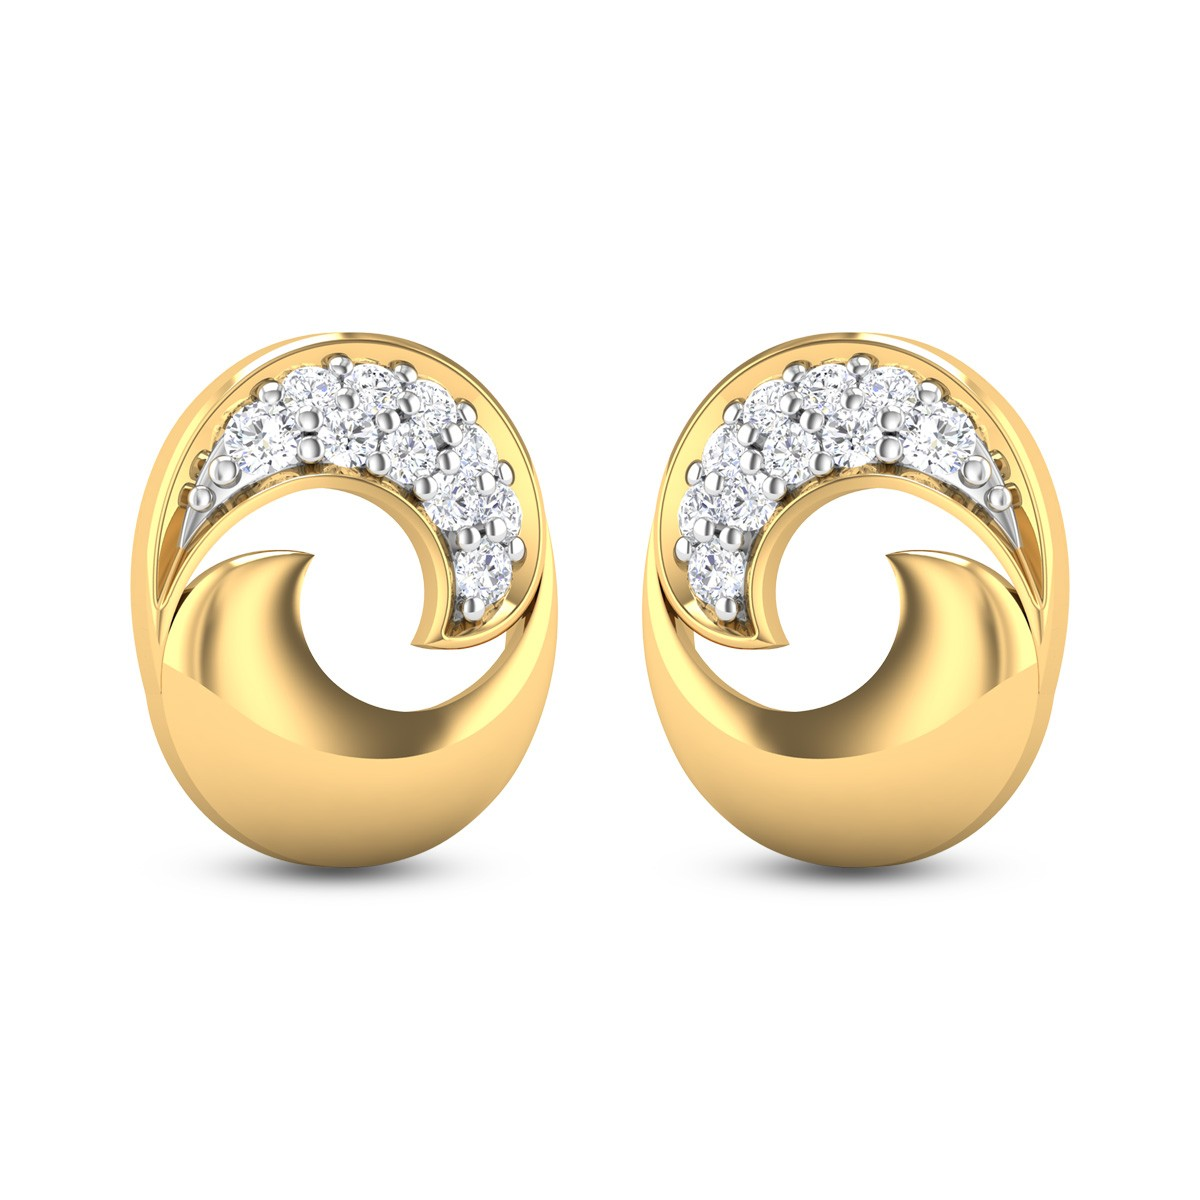 Lovelle Diamond Earrings